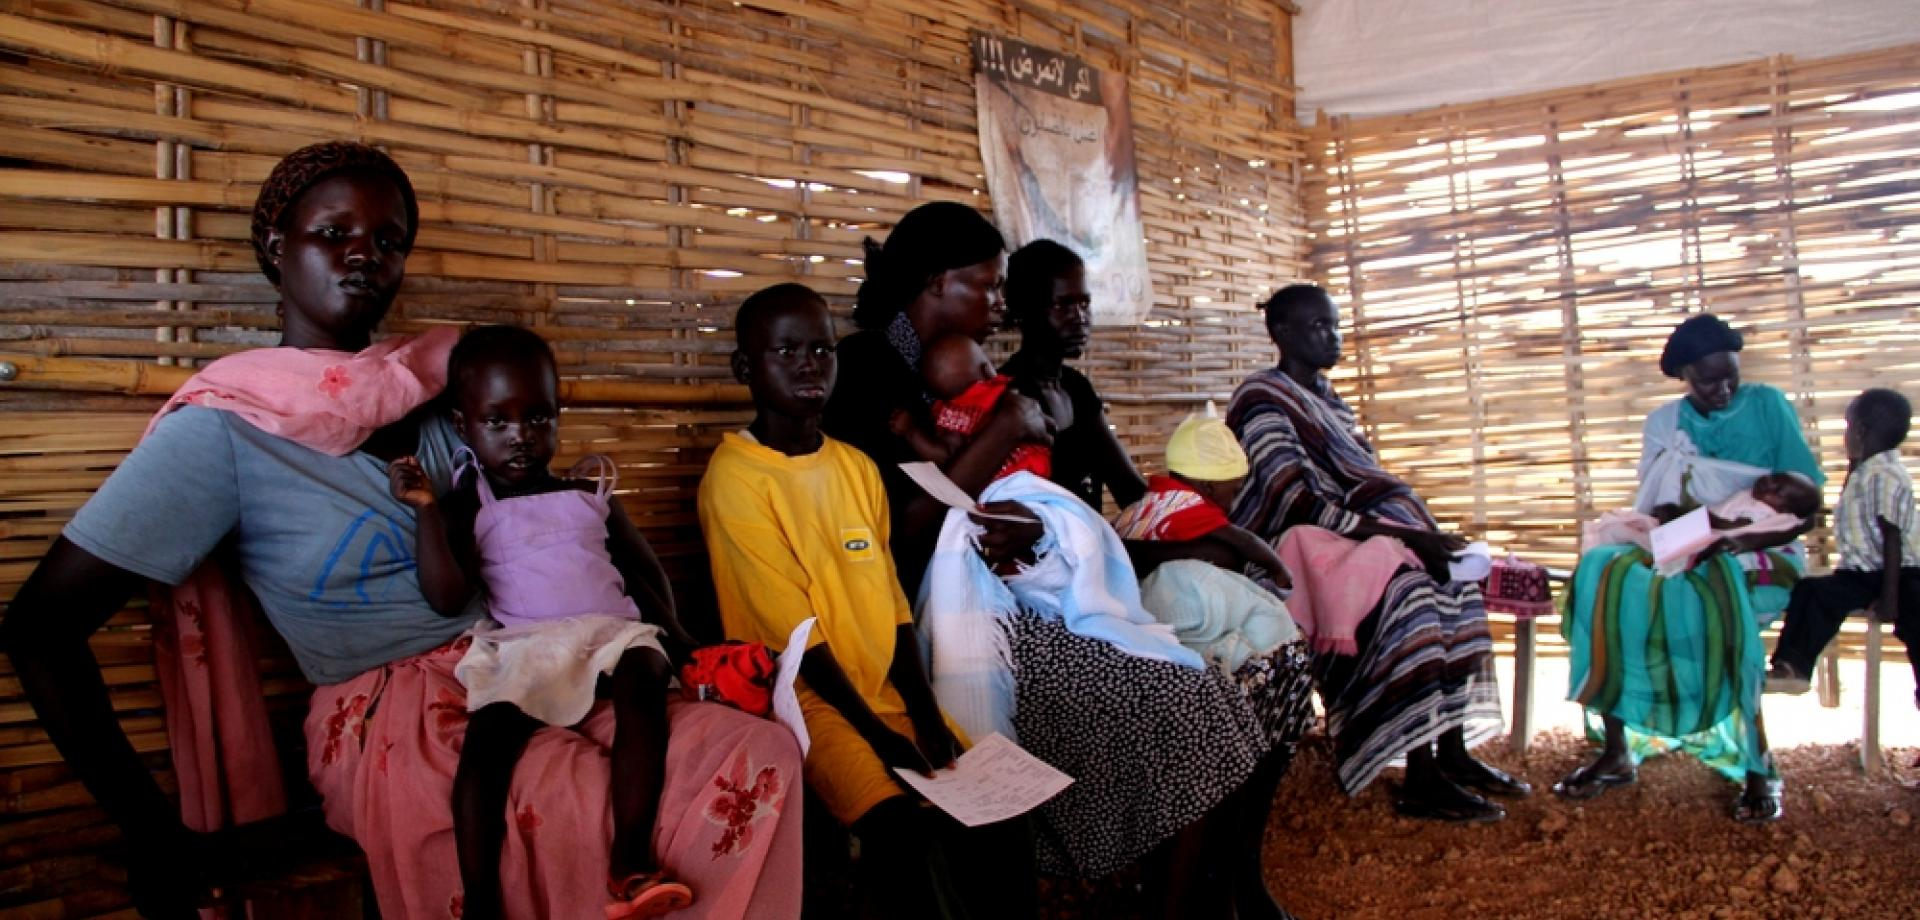 A pleasant surprise | Blogs from Doctors Without Borders